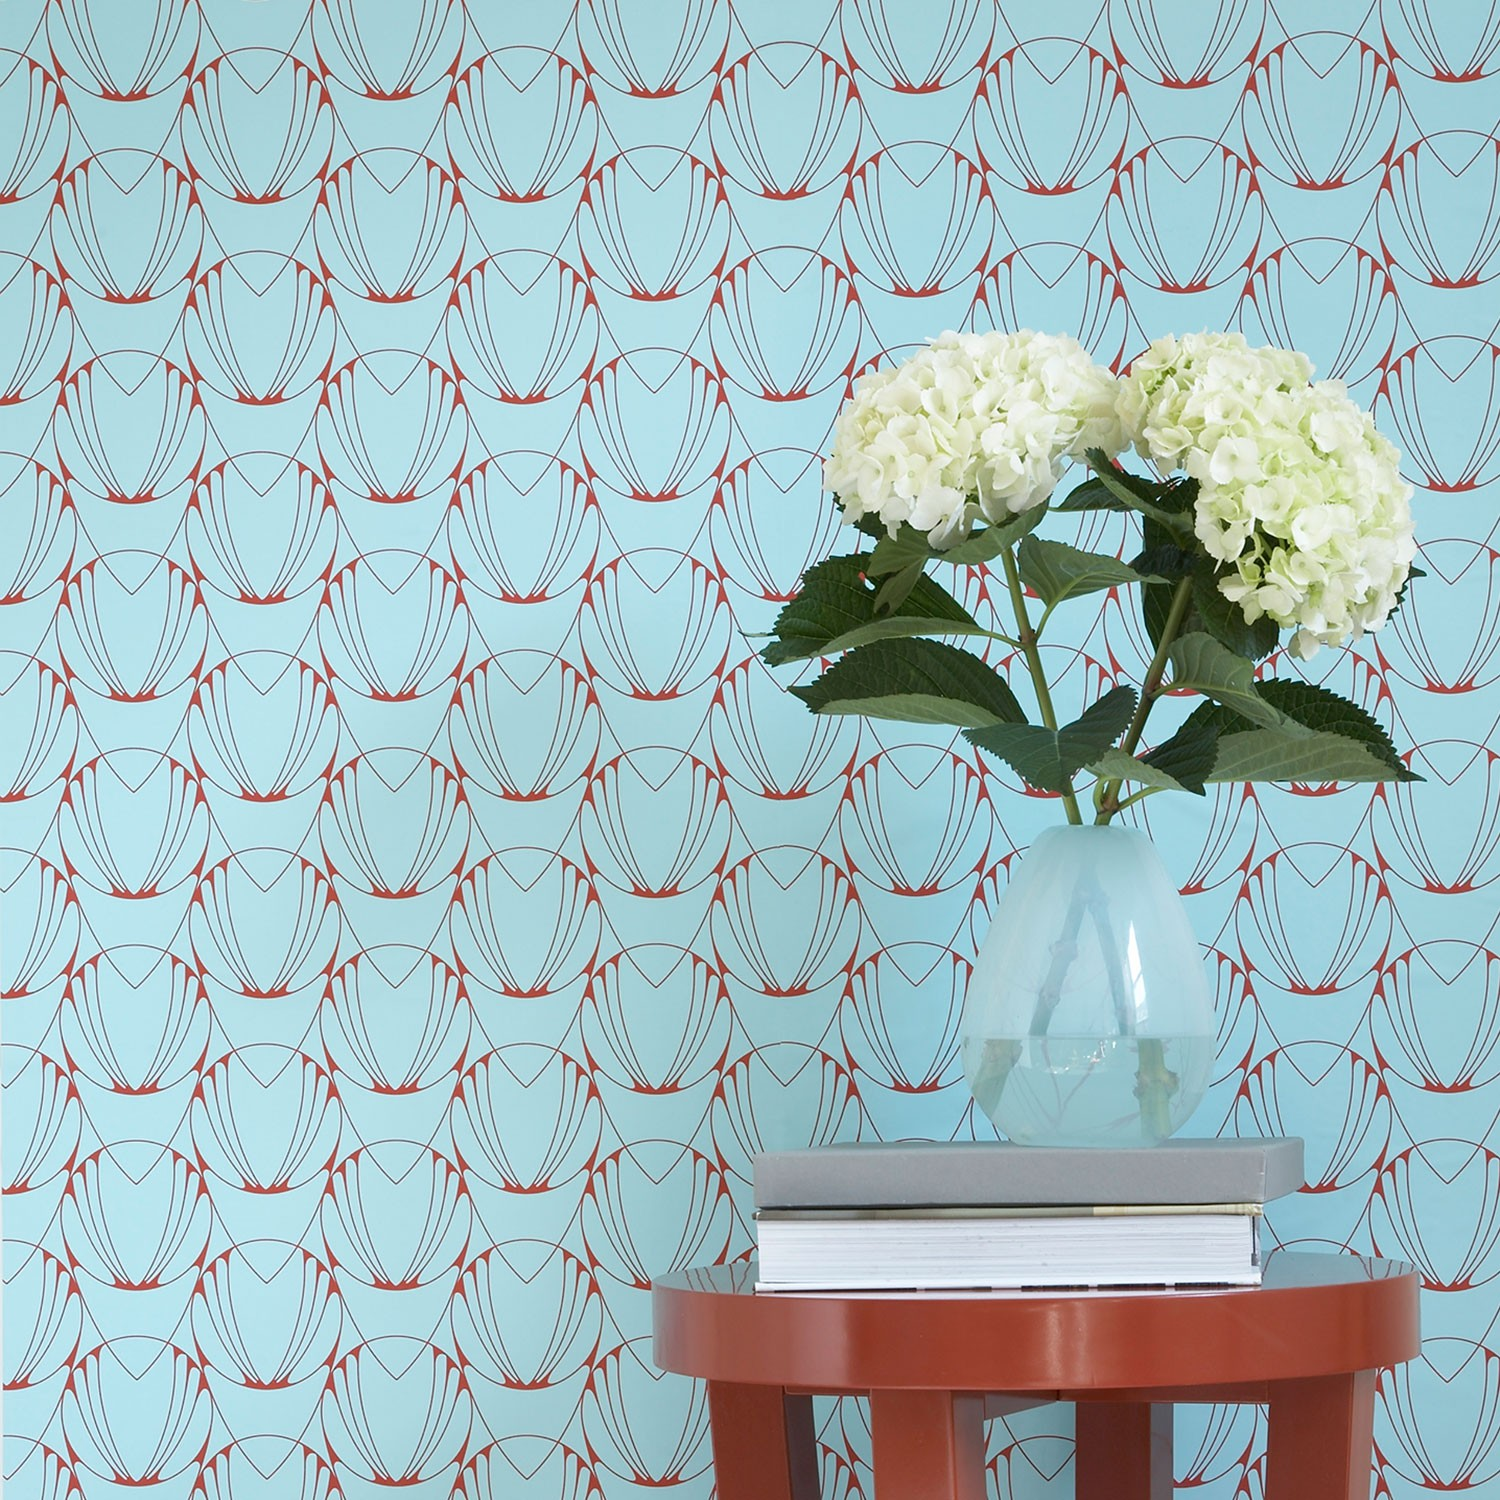 Temporary Wallpaper   Alto Caribbean   Removable Wallpaper   Wall 1500x1500